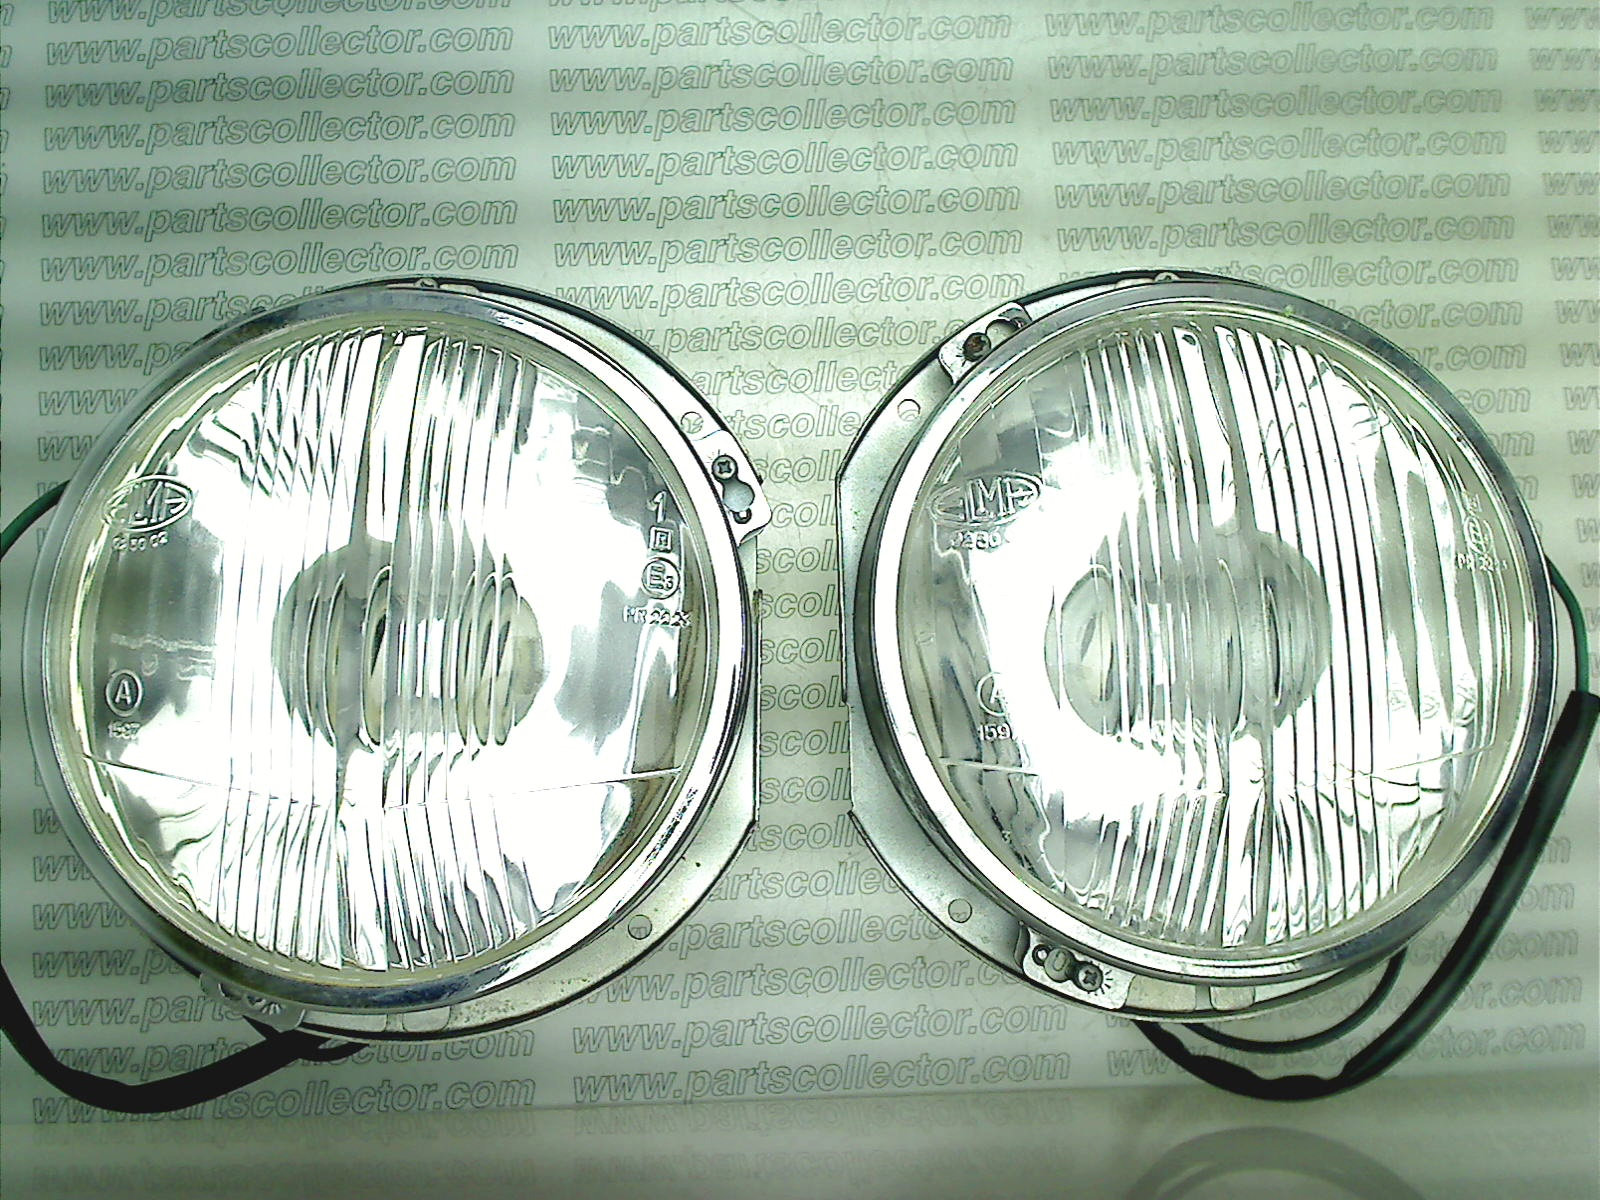 PAIR OF DEEP BEAM HEADLIGHTS LH+RH